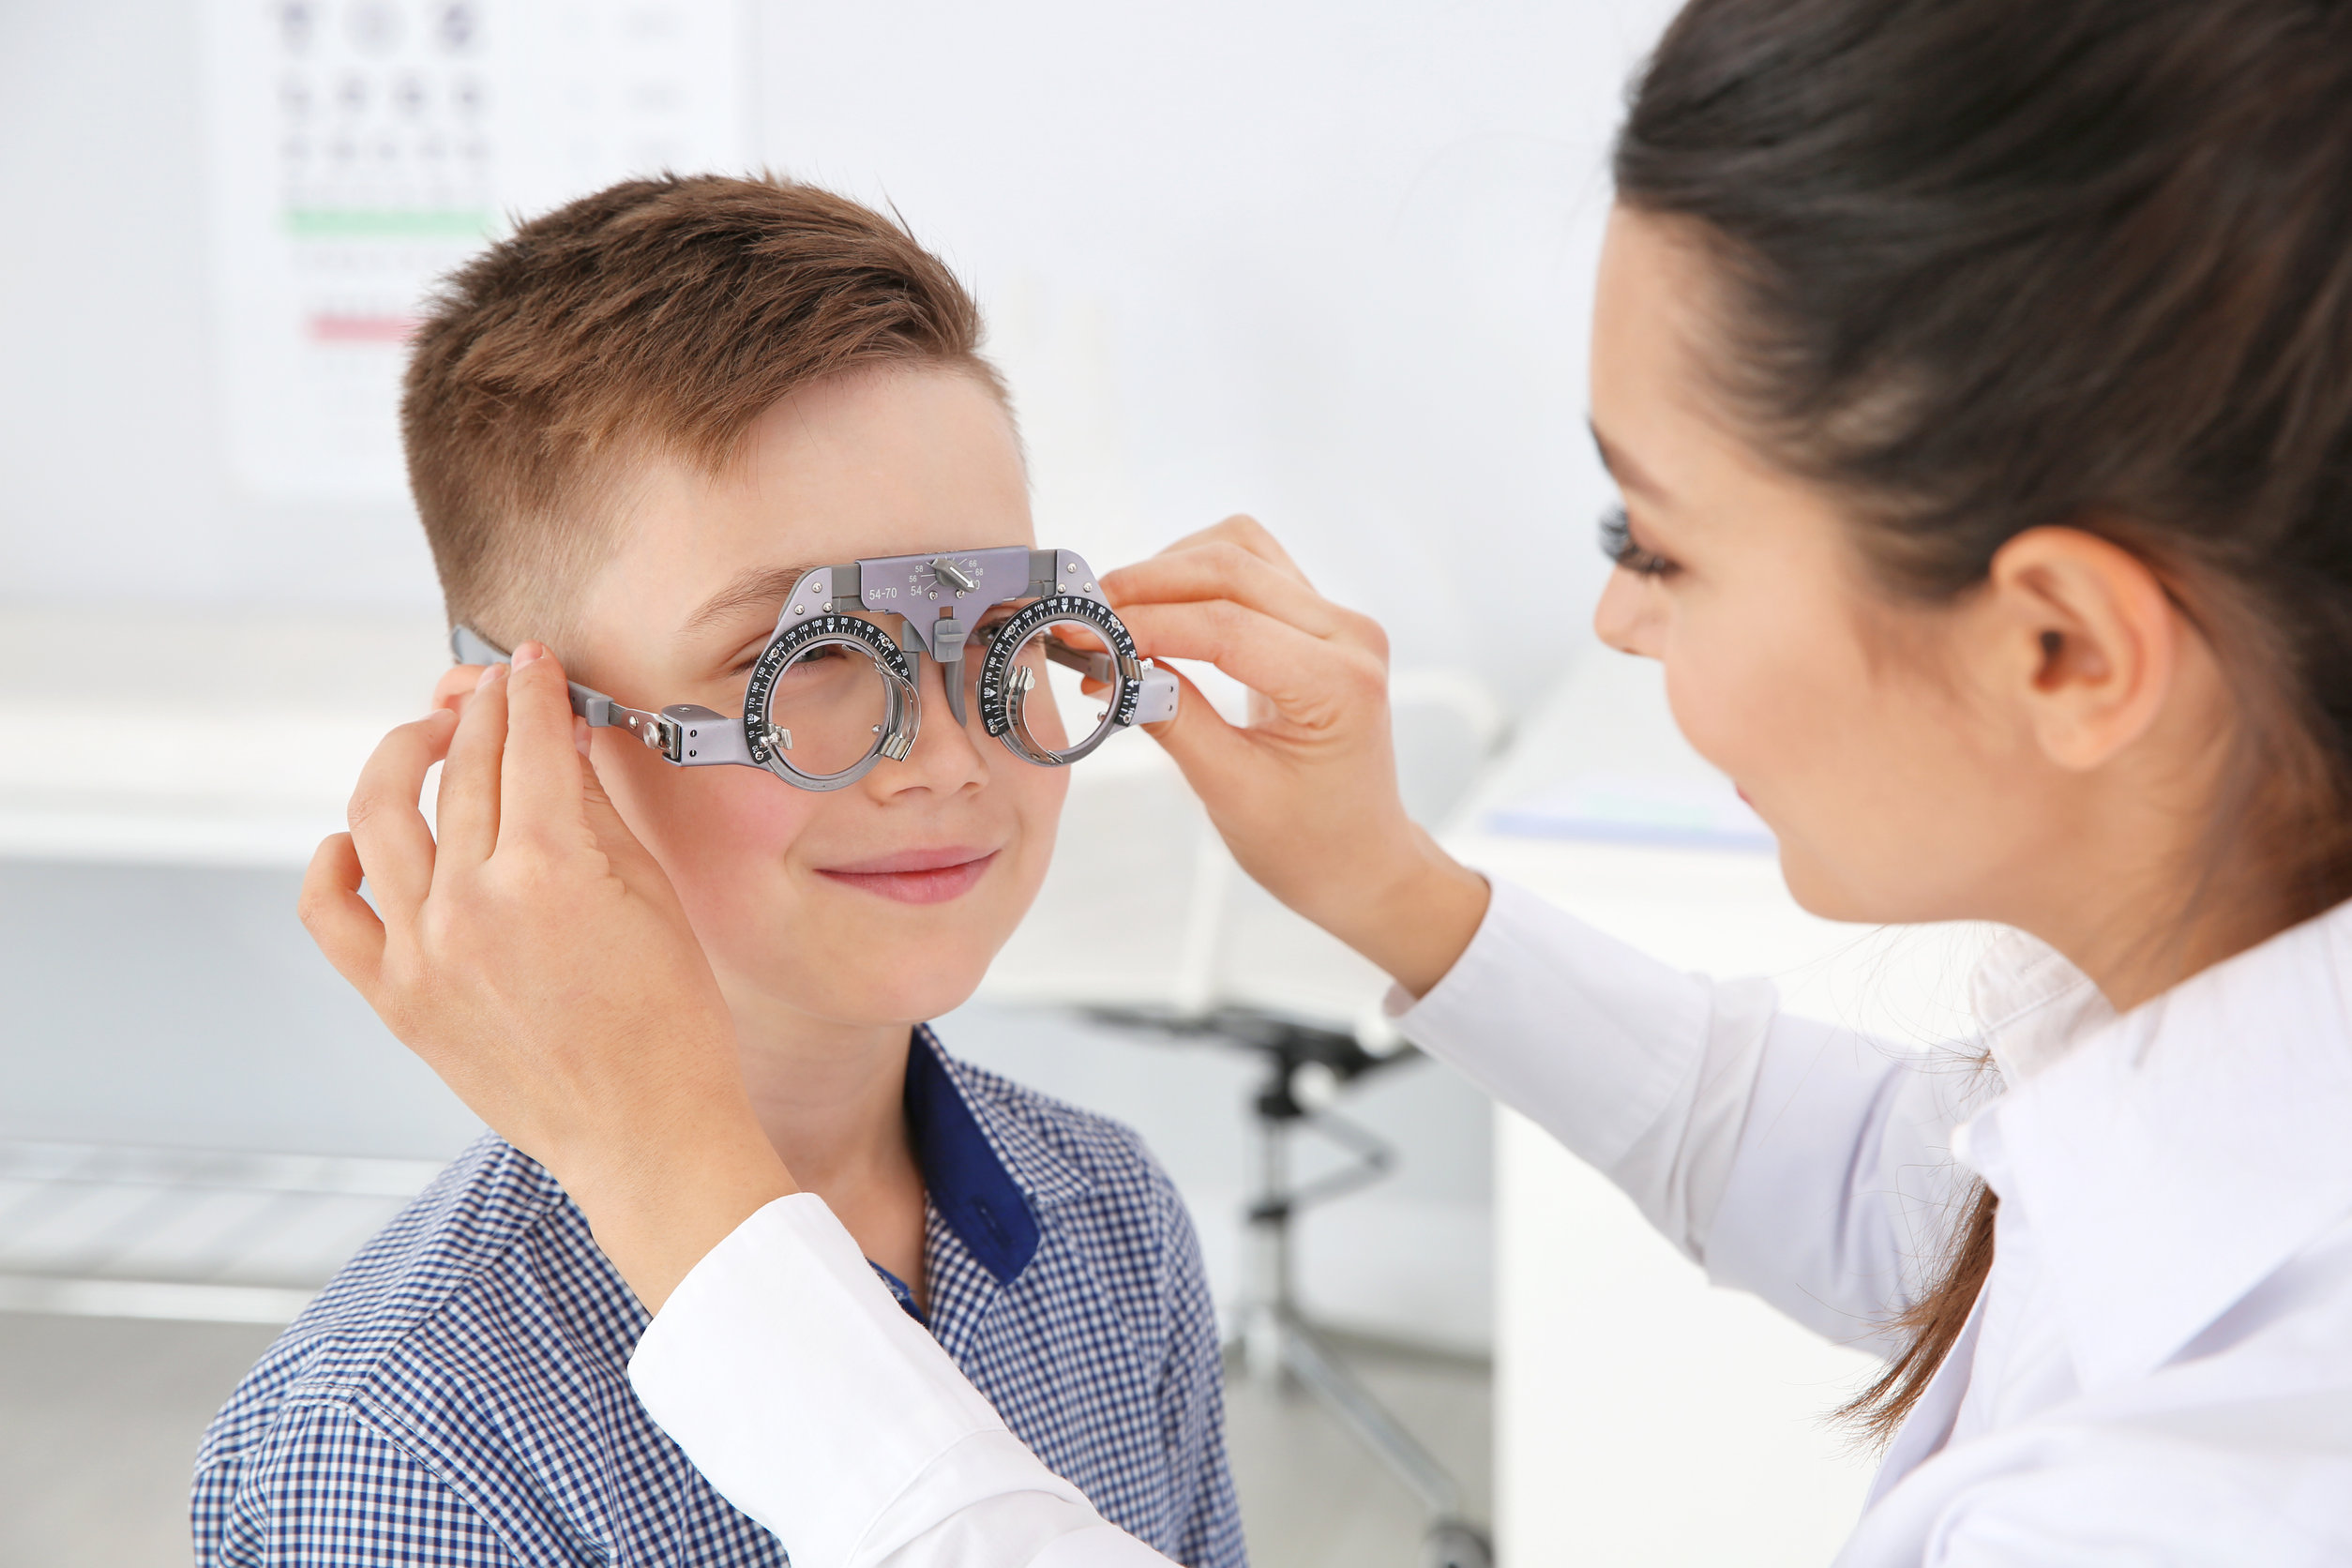 Children's Eye Health and Safety Month is this August – Is Your Family Ready?